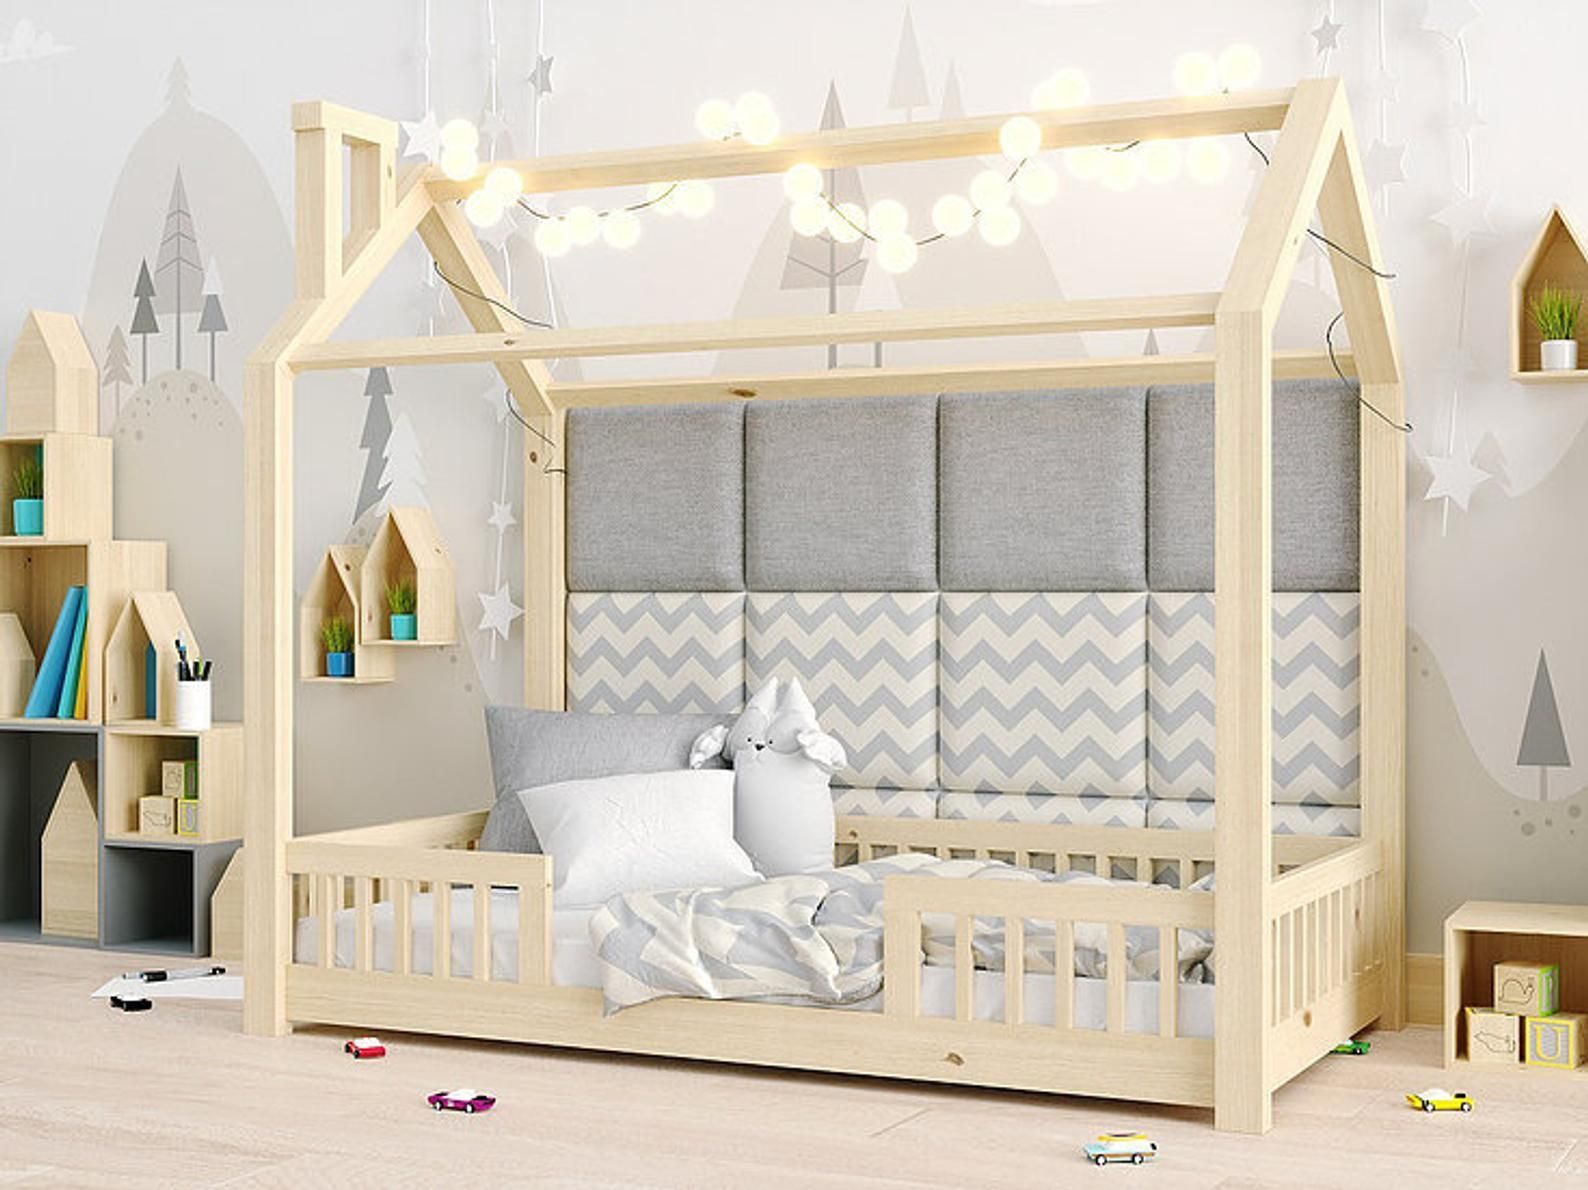 House Bed Cot Cot Wooden Bed Children S Room Cot Pine Wood Cot With Proof Protection Kinderbett Haus Kinderbett Kinderbett Holz